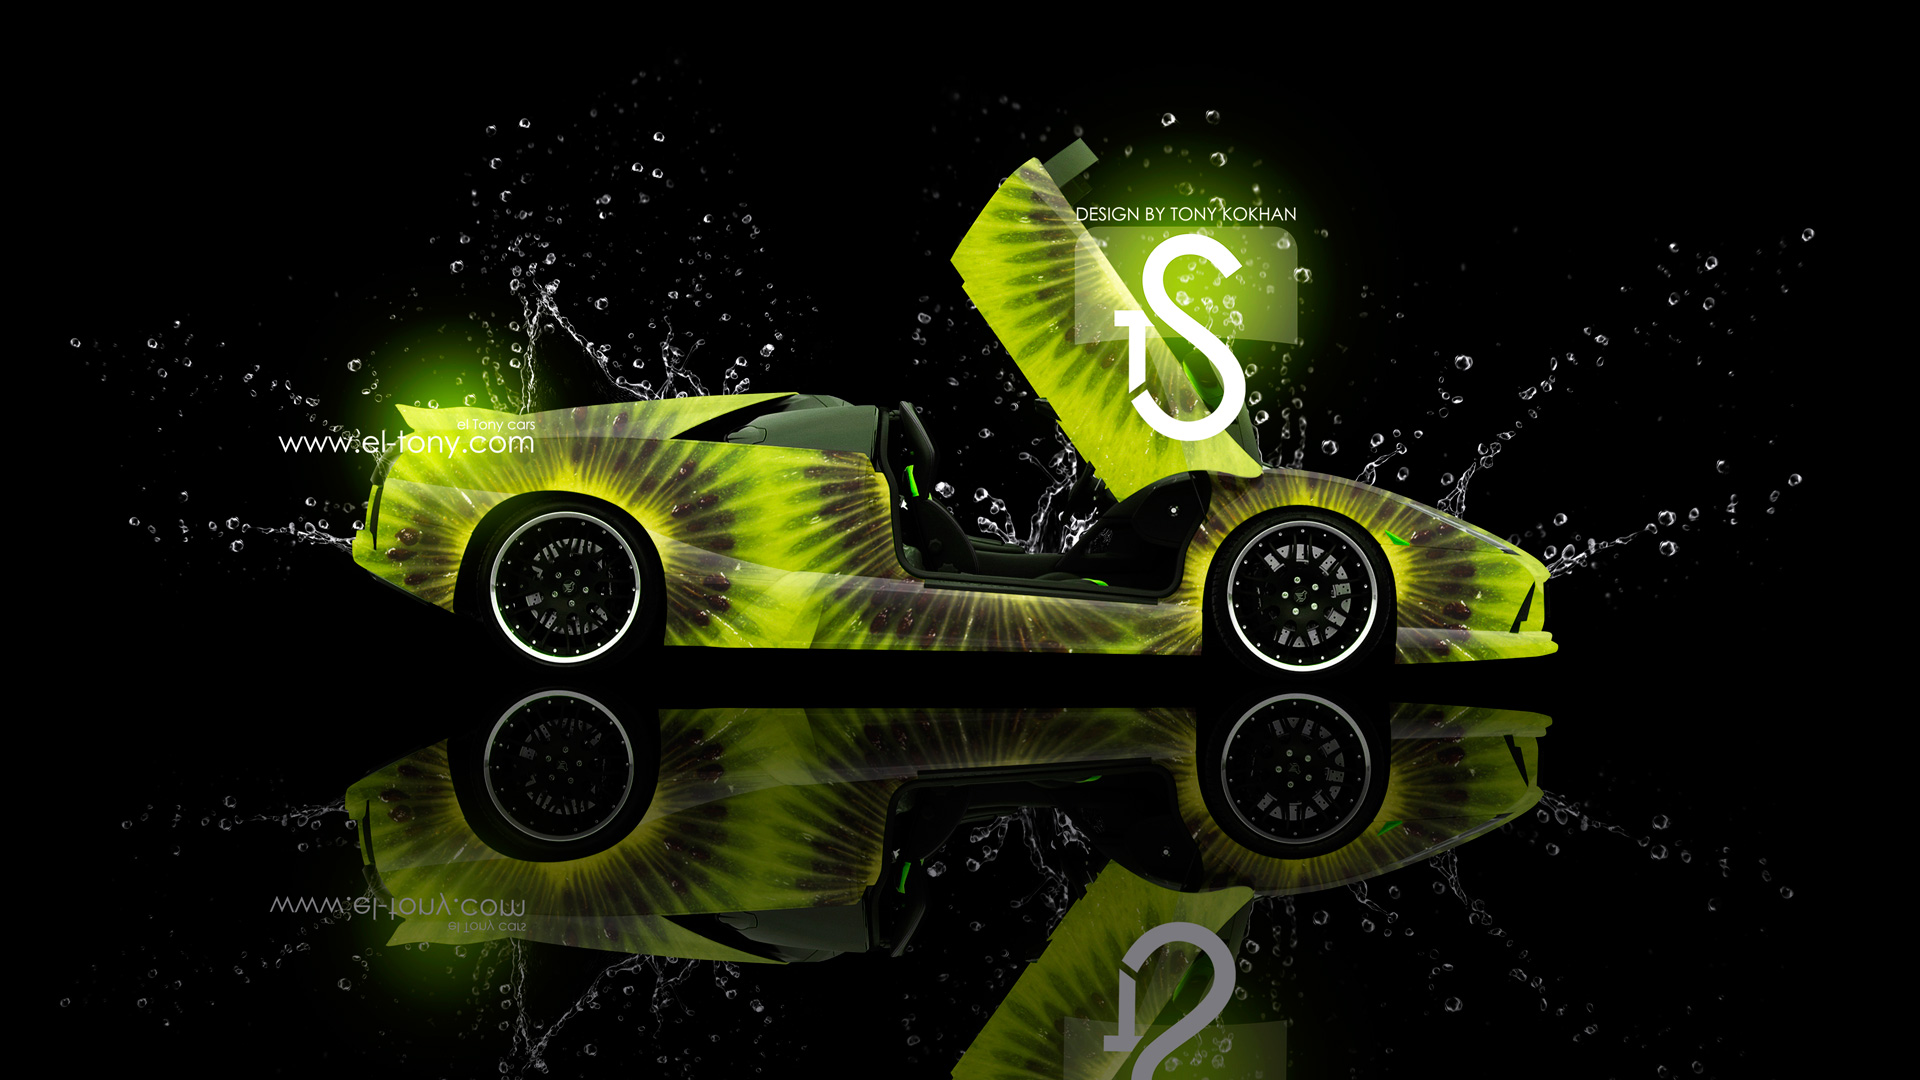 Lamborghini Murcielago Kiwi Water Style 2013 HD Wallpapers